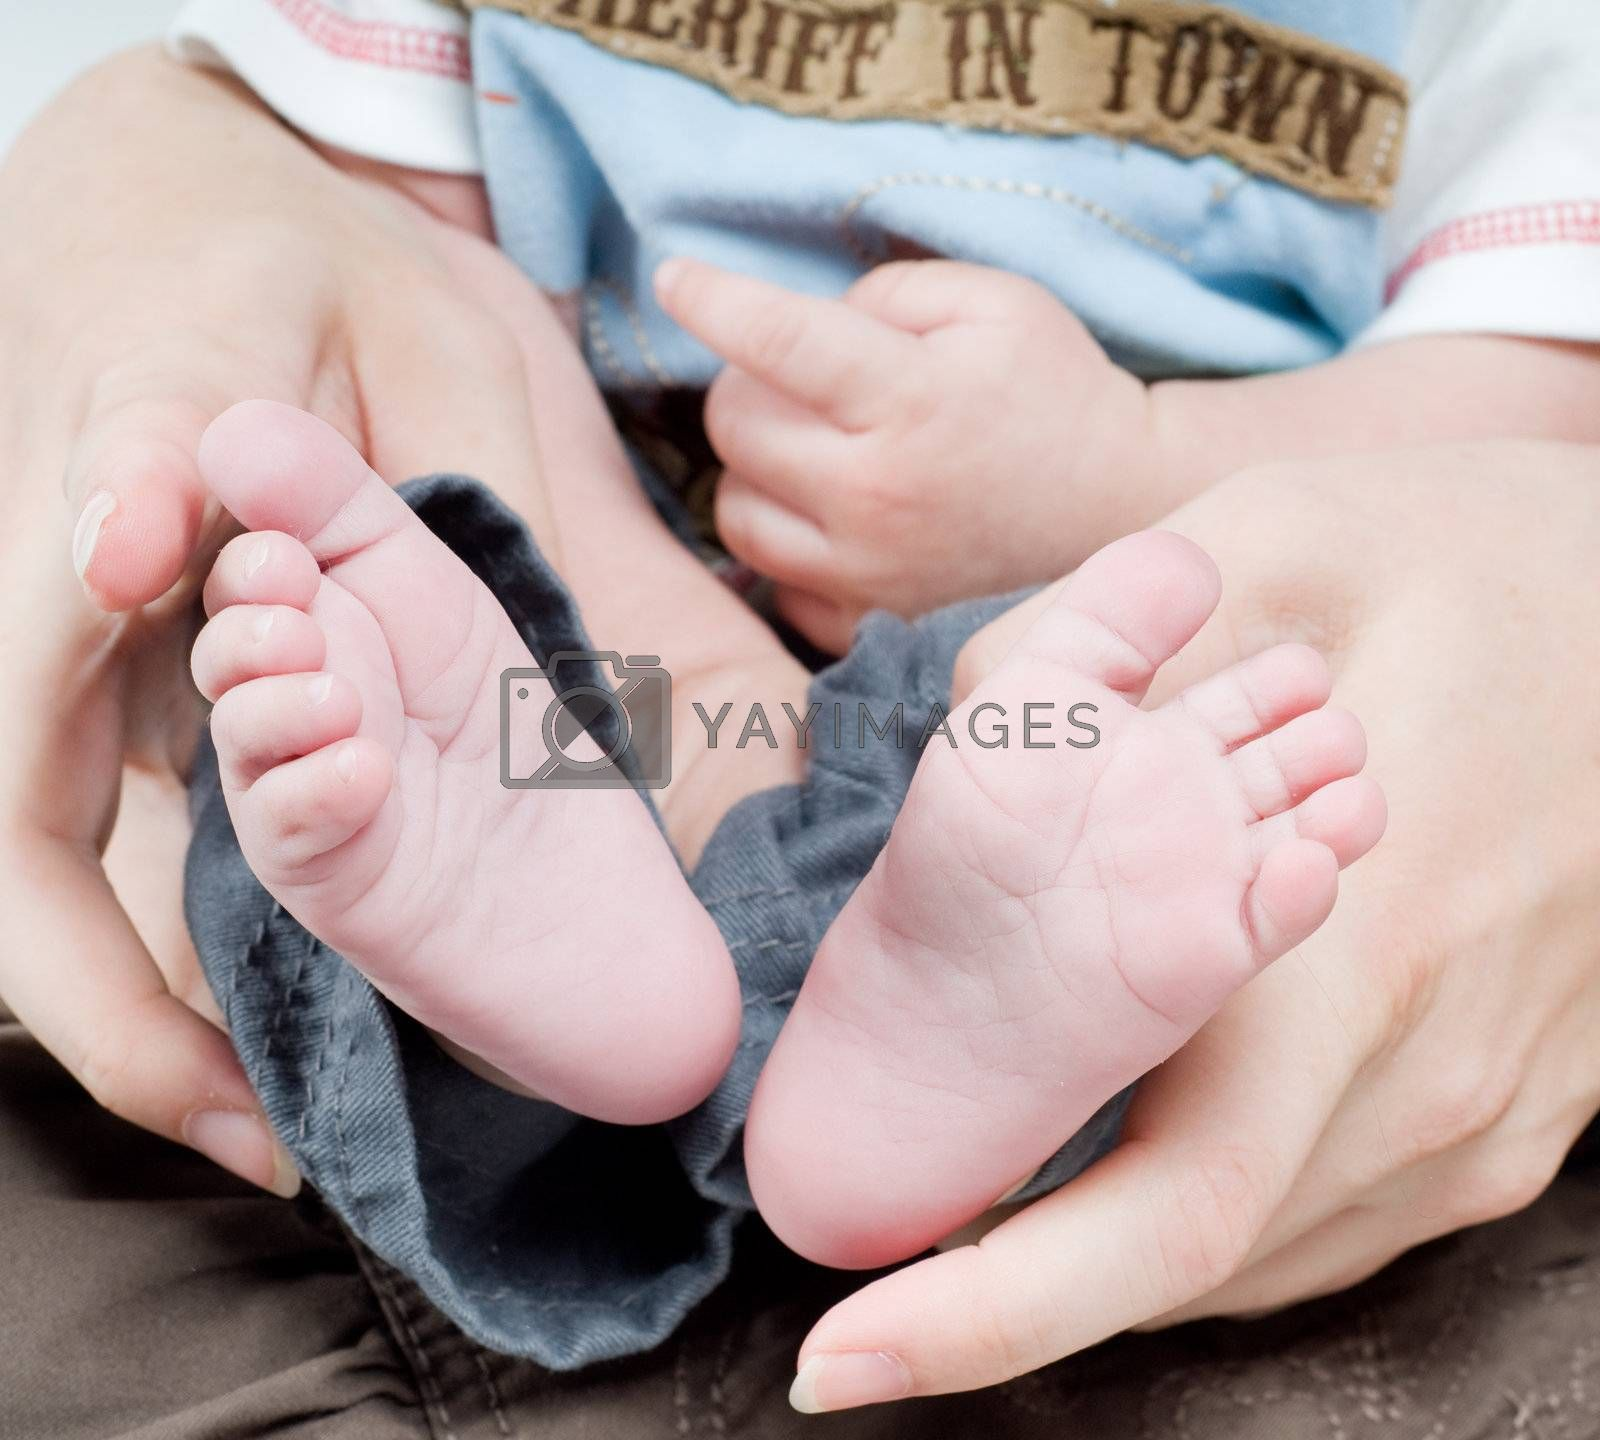 Royalty free image of Newborn child in caring hands by anytka